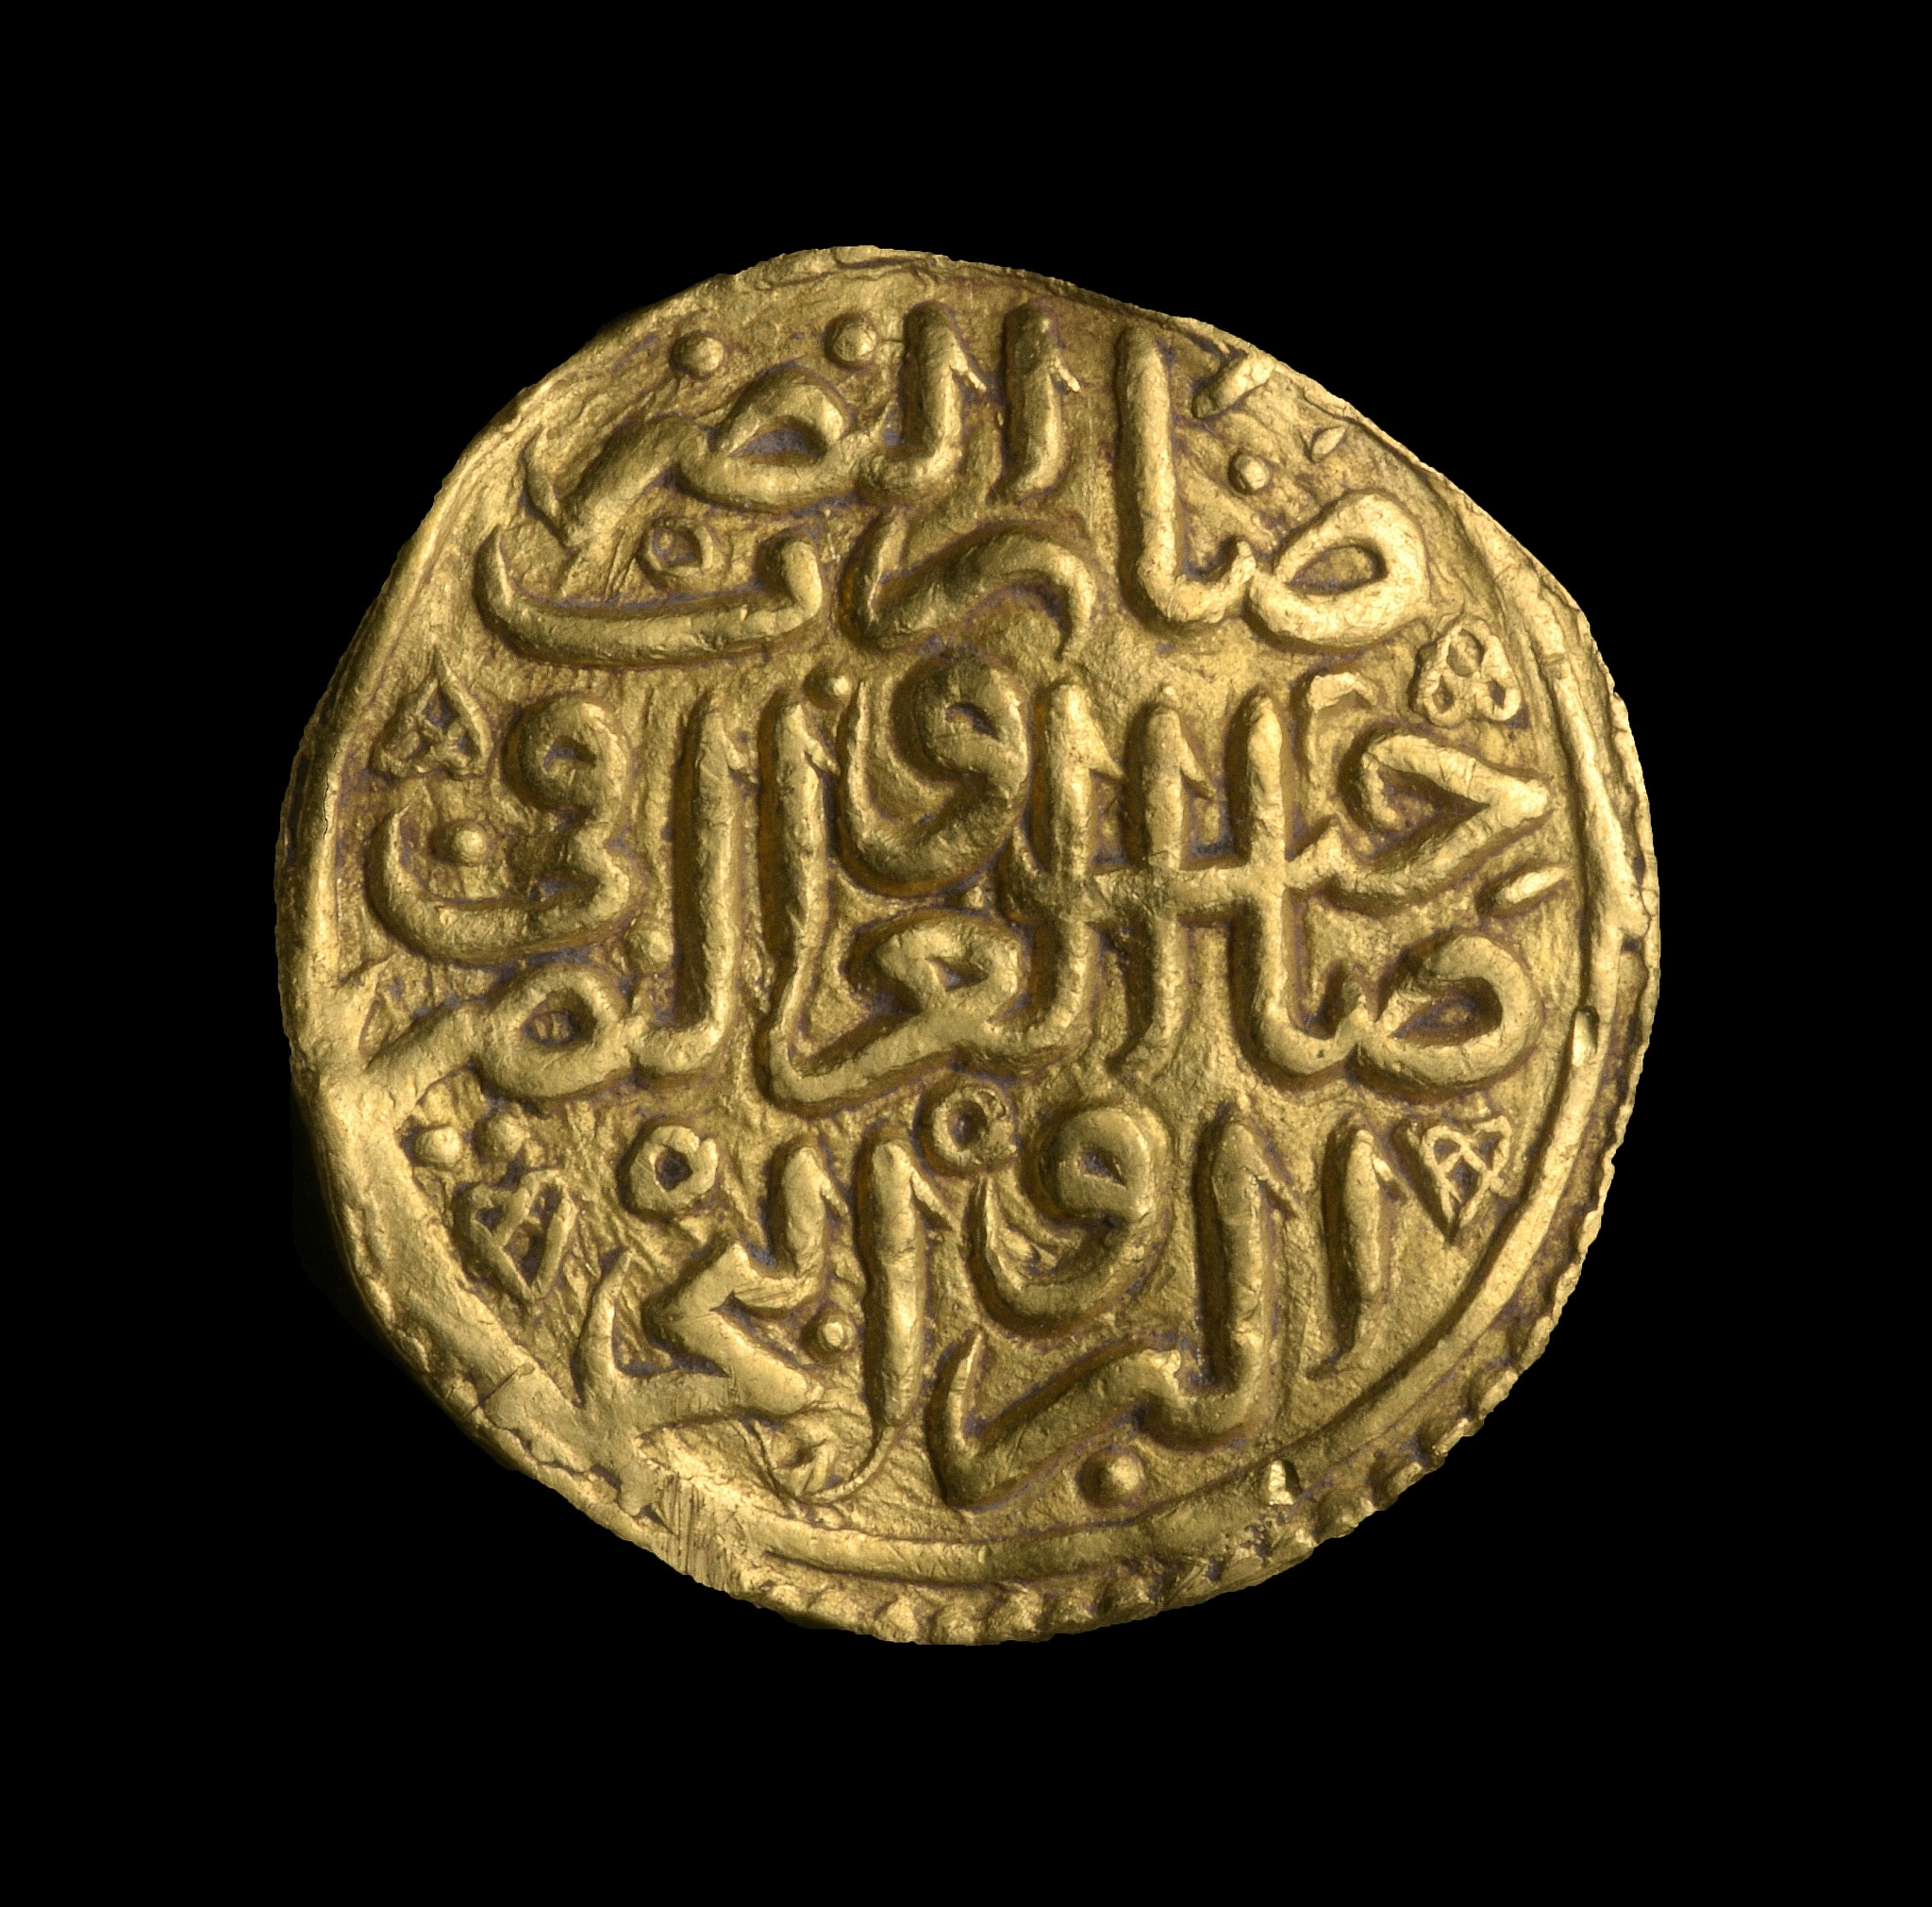 Rare coins of antiquity and modernity. How to recognize them